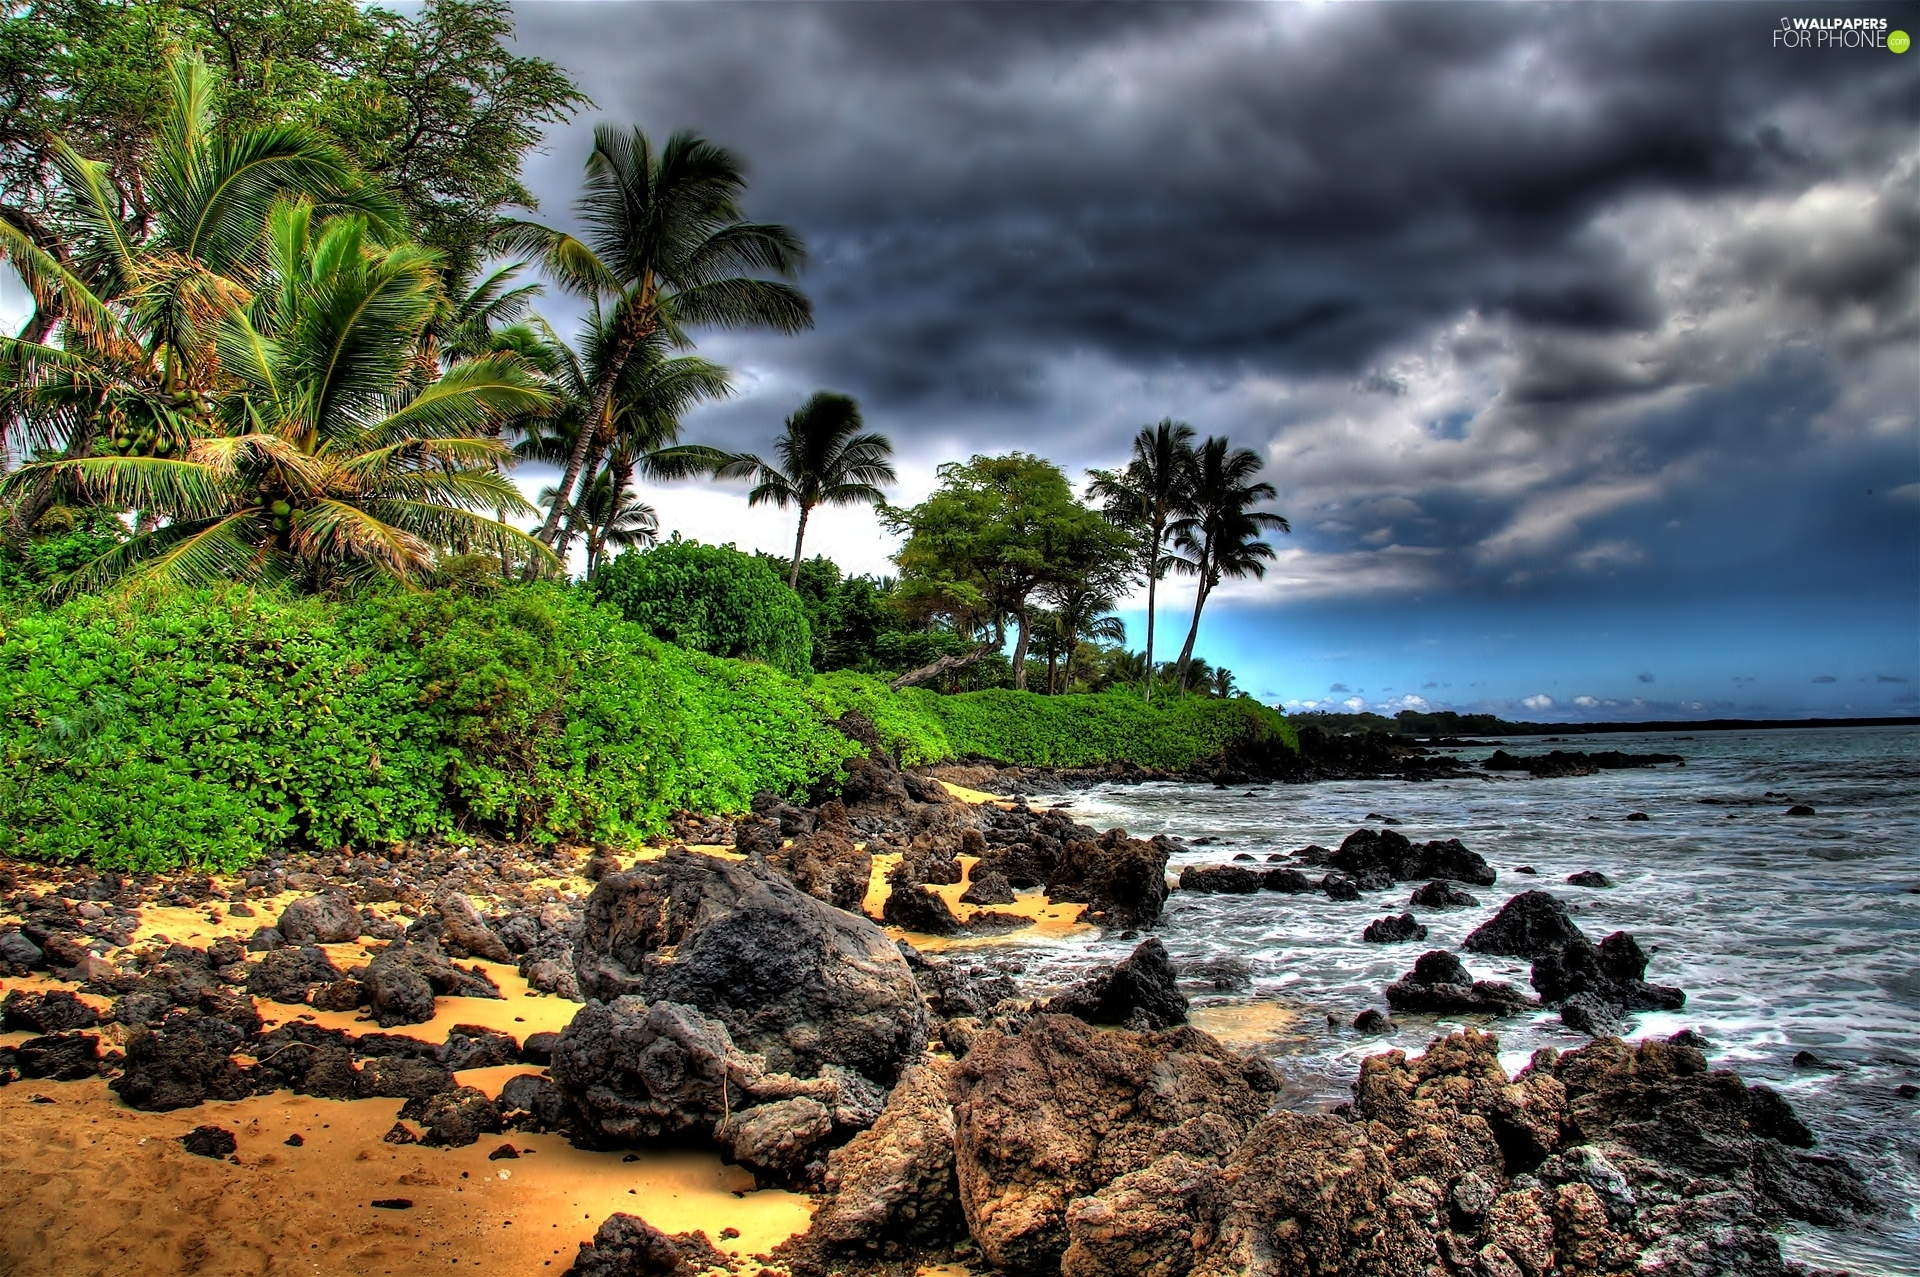 Coast, sea, Palms